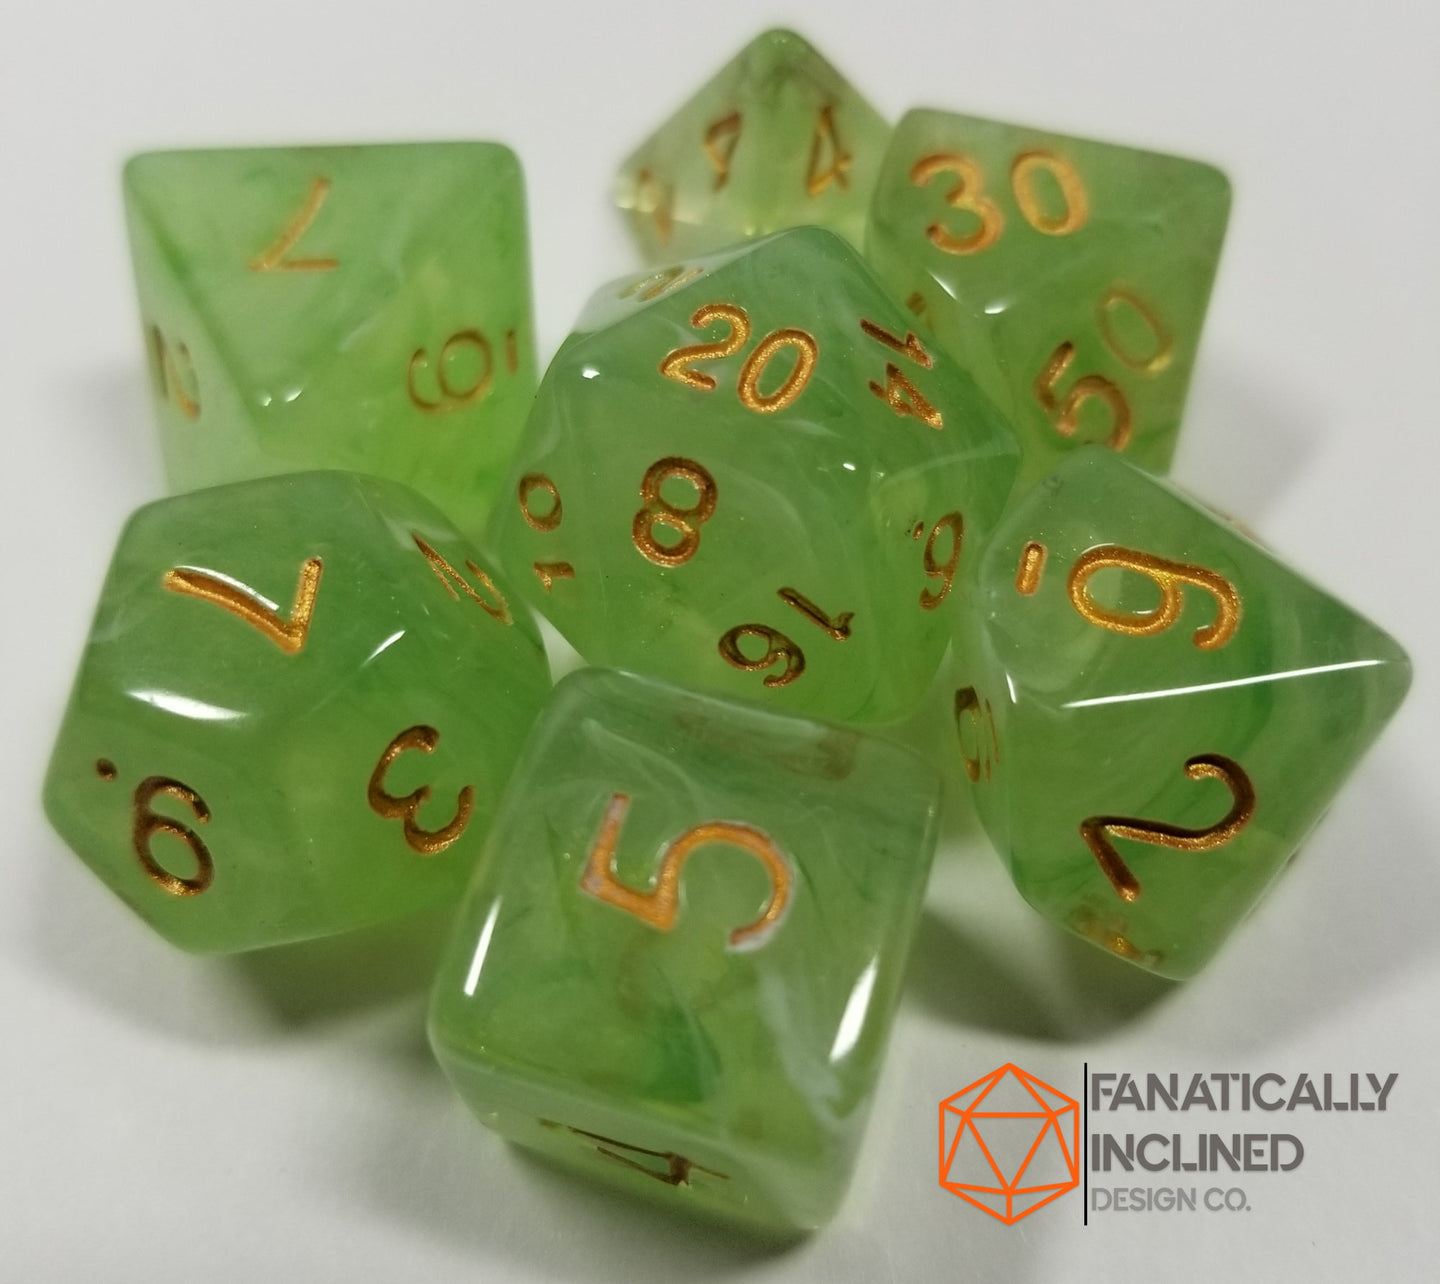 Green Gelatinous Cube 7pc Dice Set